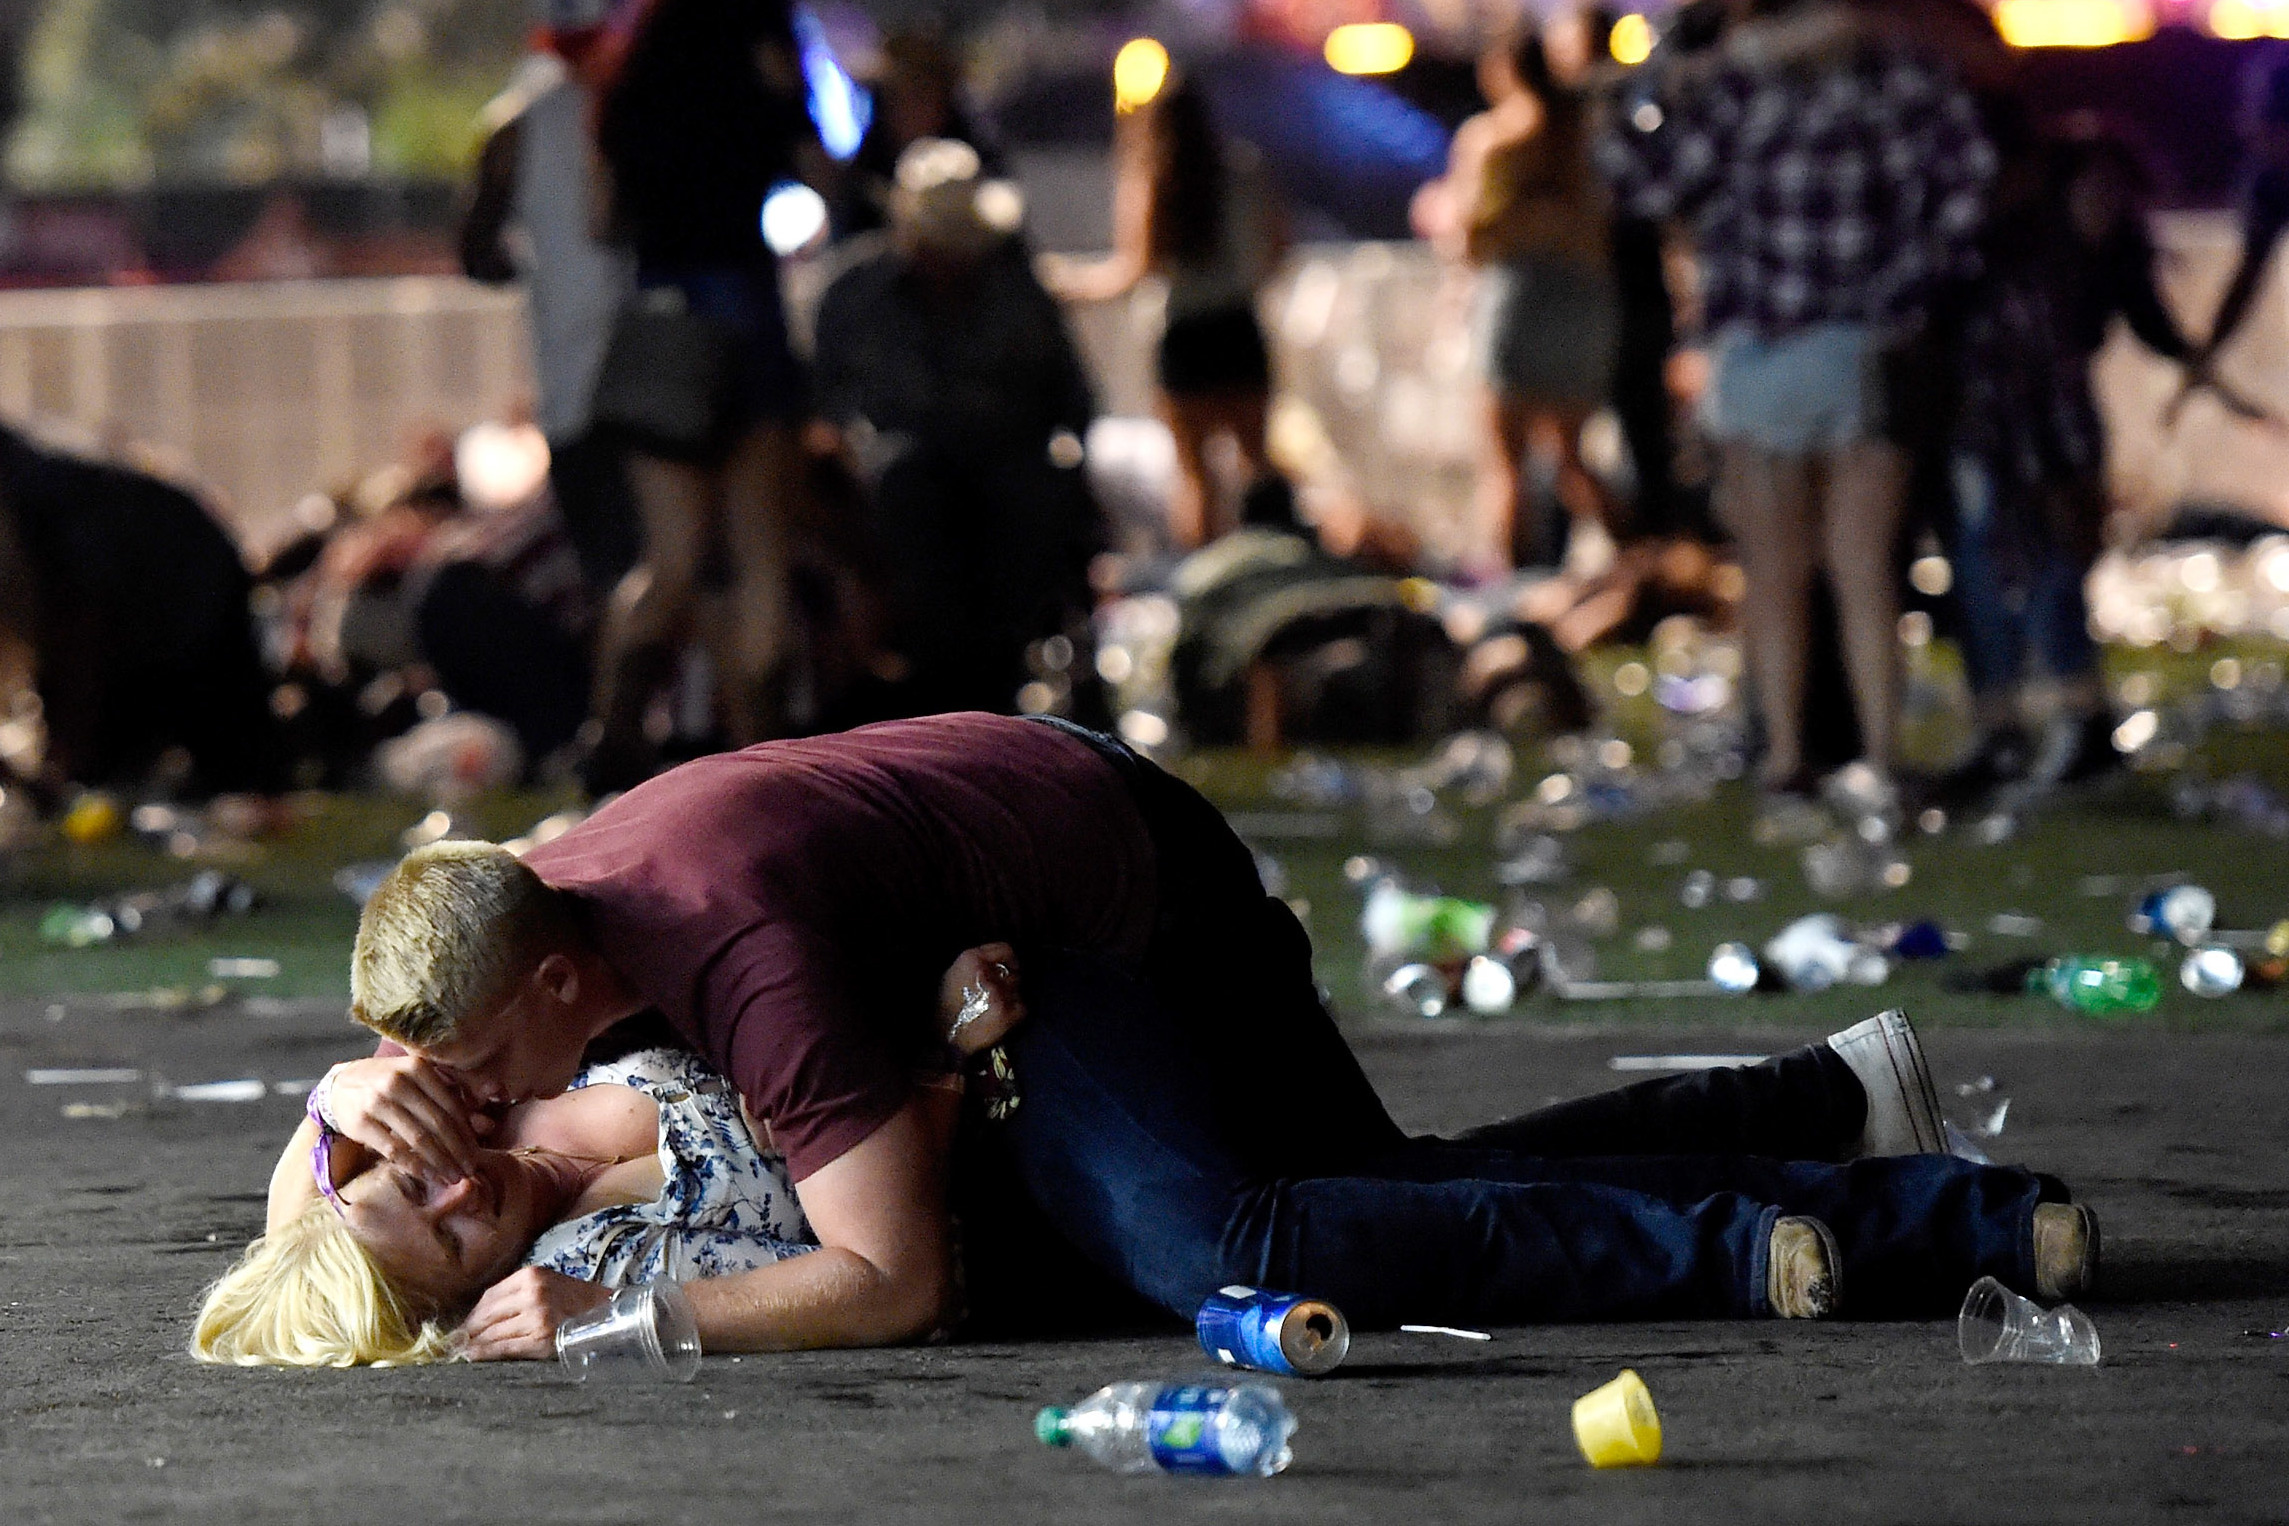 A man lays on top of a woman as people flee a mass shooting in Las Vegas, Nevada (DAVID BECKER / GETTY IMAGES / AFP)